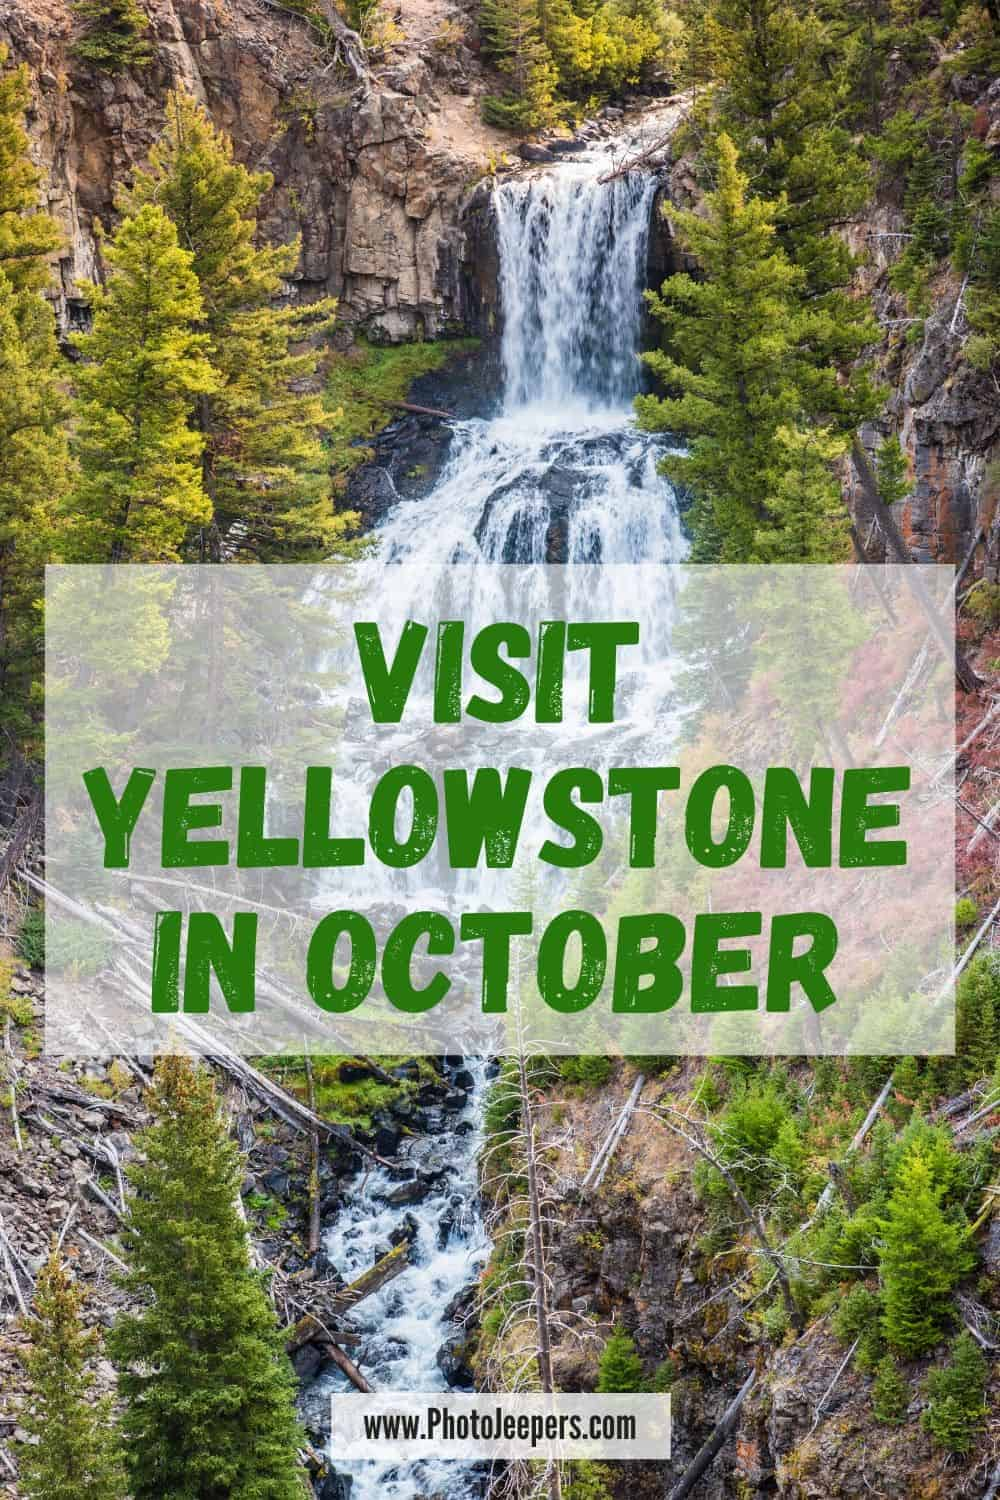 Visit Yellowstone in October